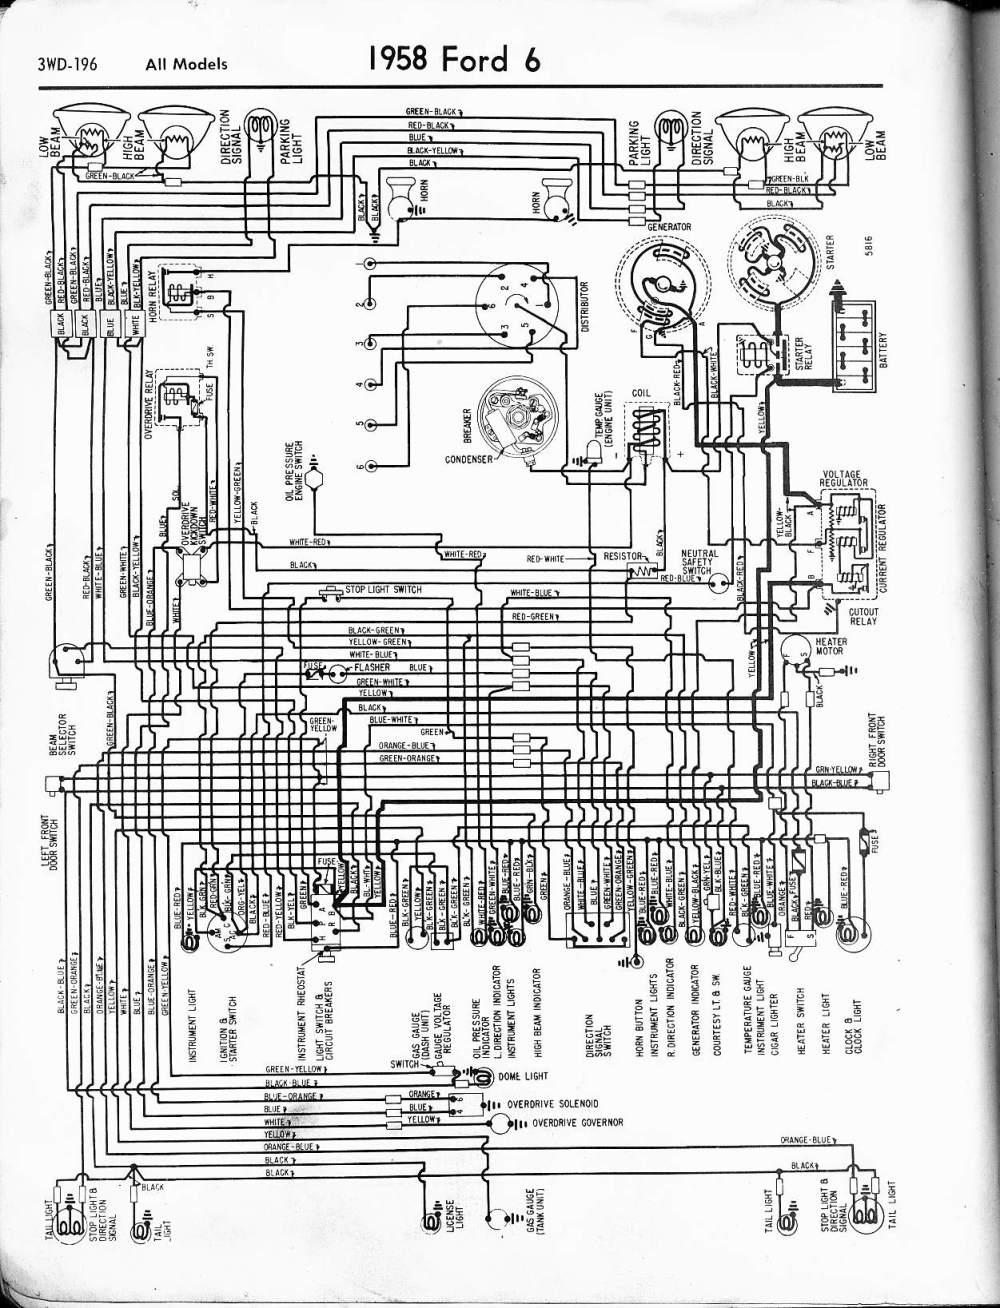 medium resolution of 57 65 ford wiring diagrams 1977 ford f150 wiring diagram 1958 6 cyl all models